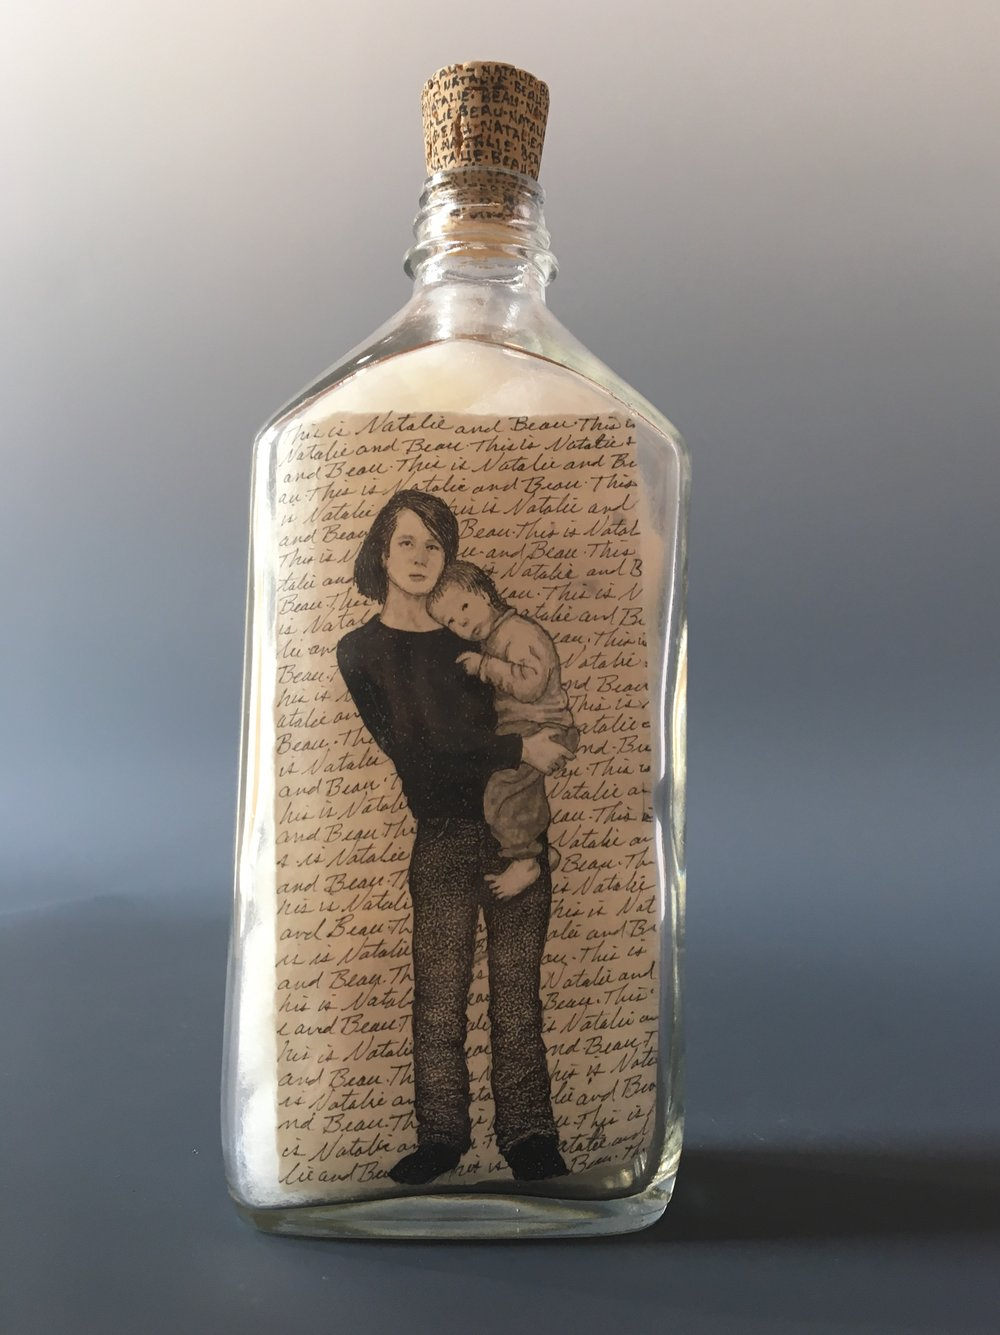 This is Natalie and Beau...They're Exhausted.  bottle drawing; ink, graphite, white charcoal on handmade paper, glass bottle, wool